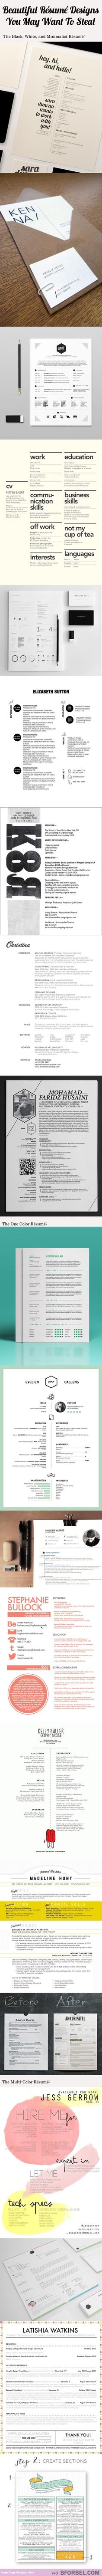 20 Beautiful Resume Designs You May Want To Steal…